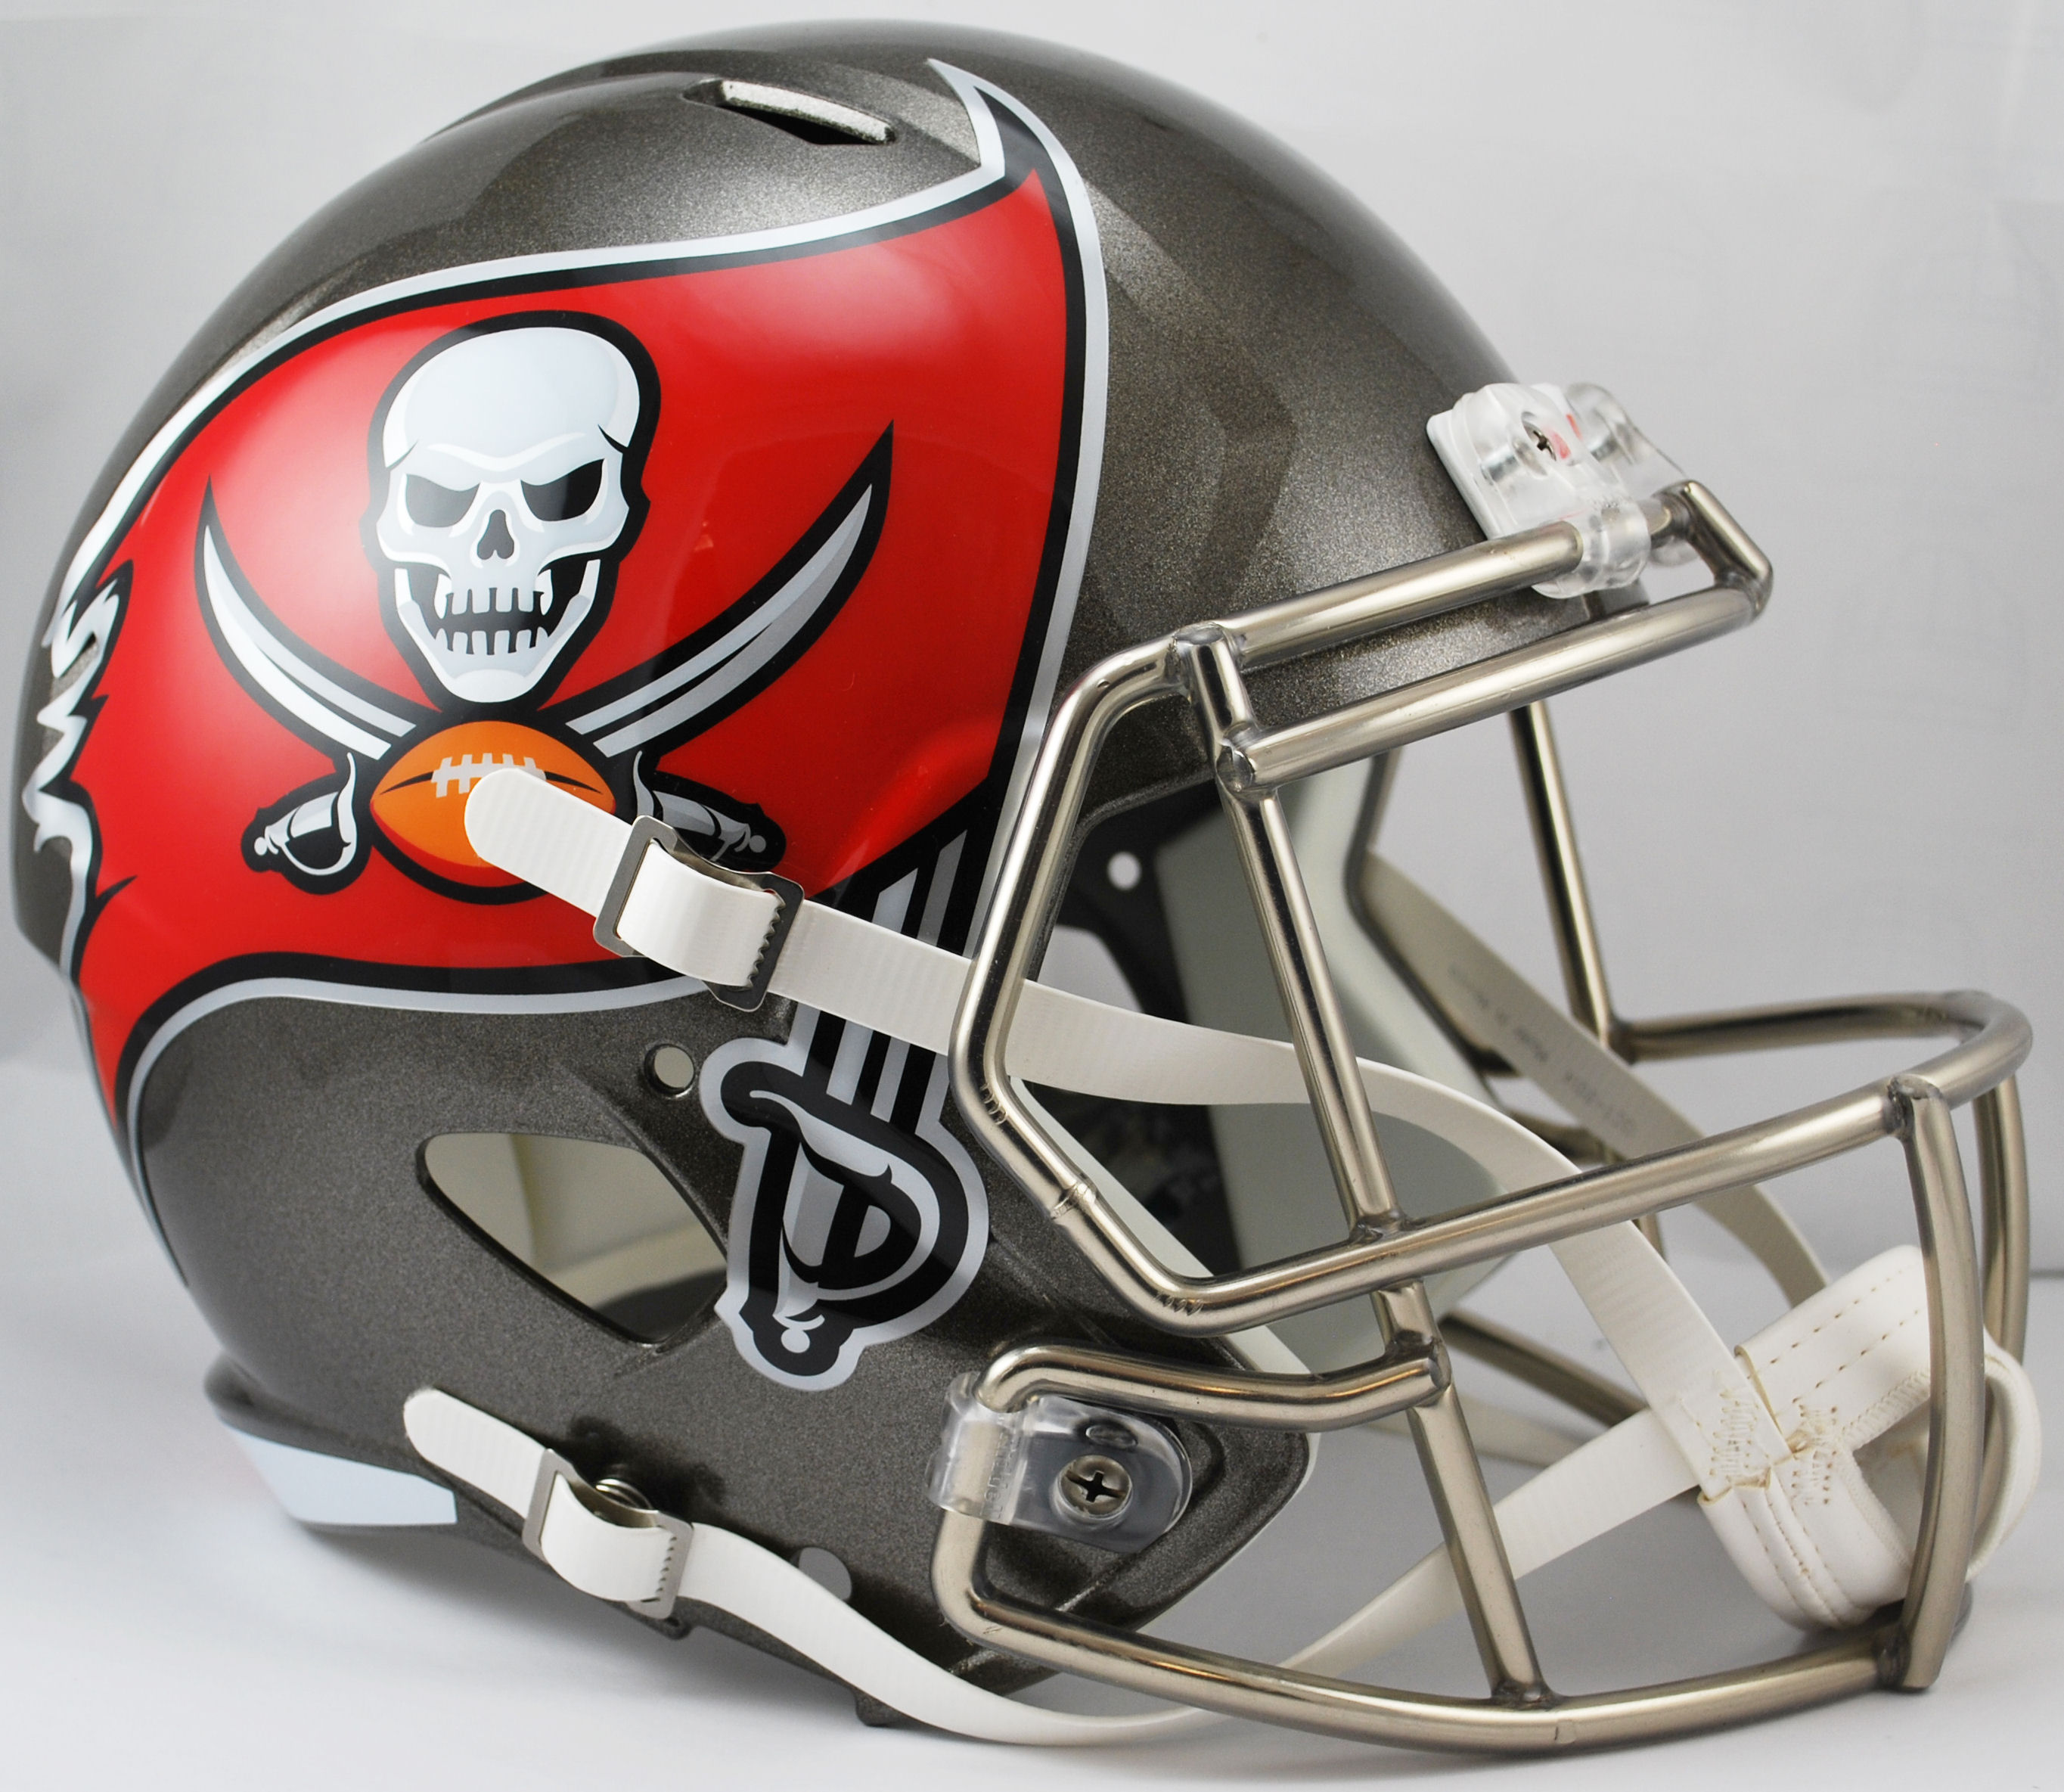 Tampa Bay Buccaneers Speed Replica Football Helmet